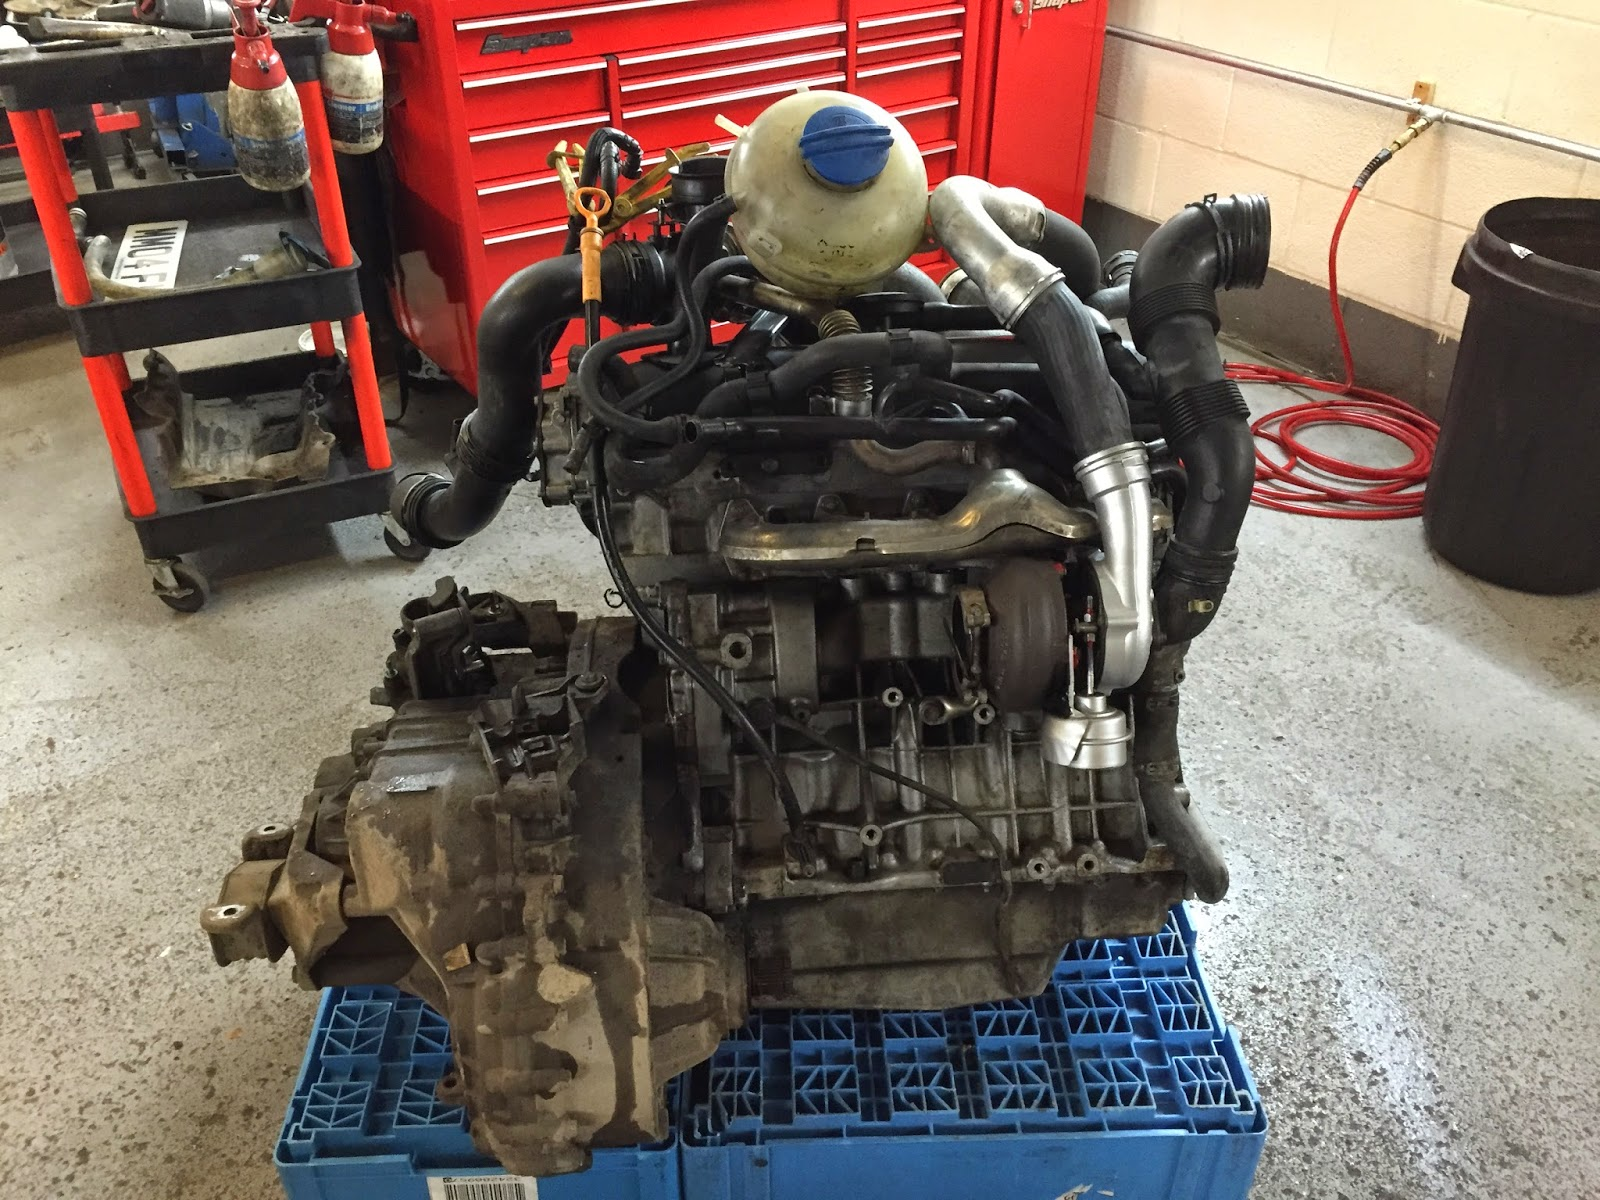 VWT5 engine completely out